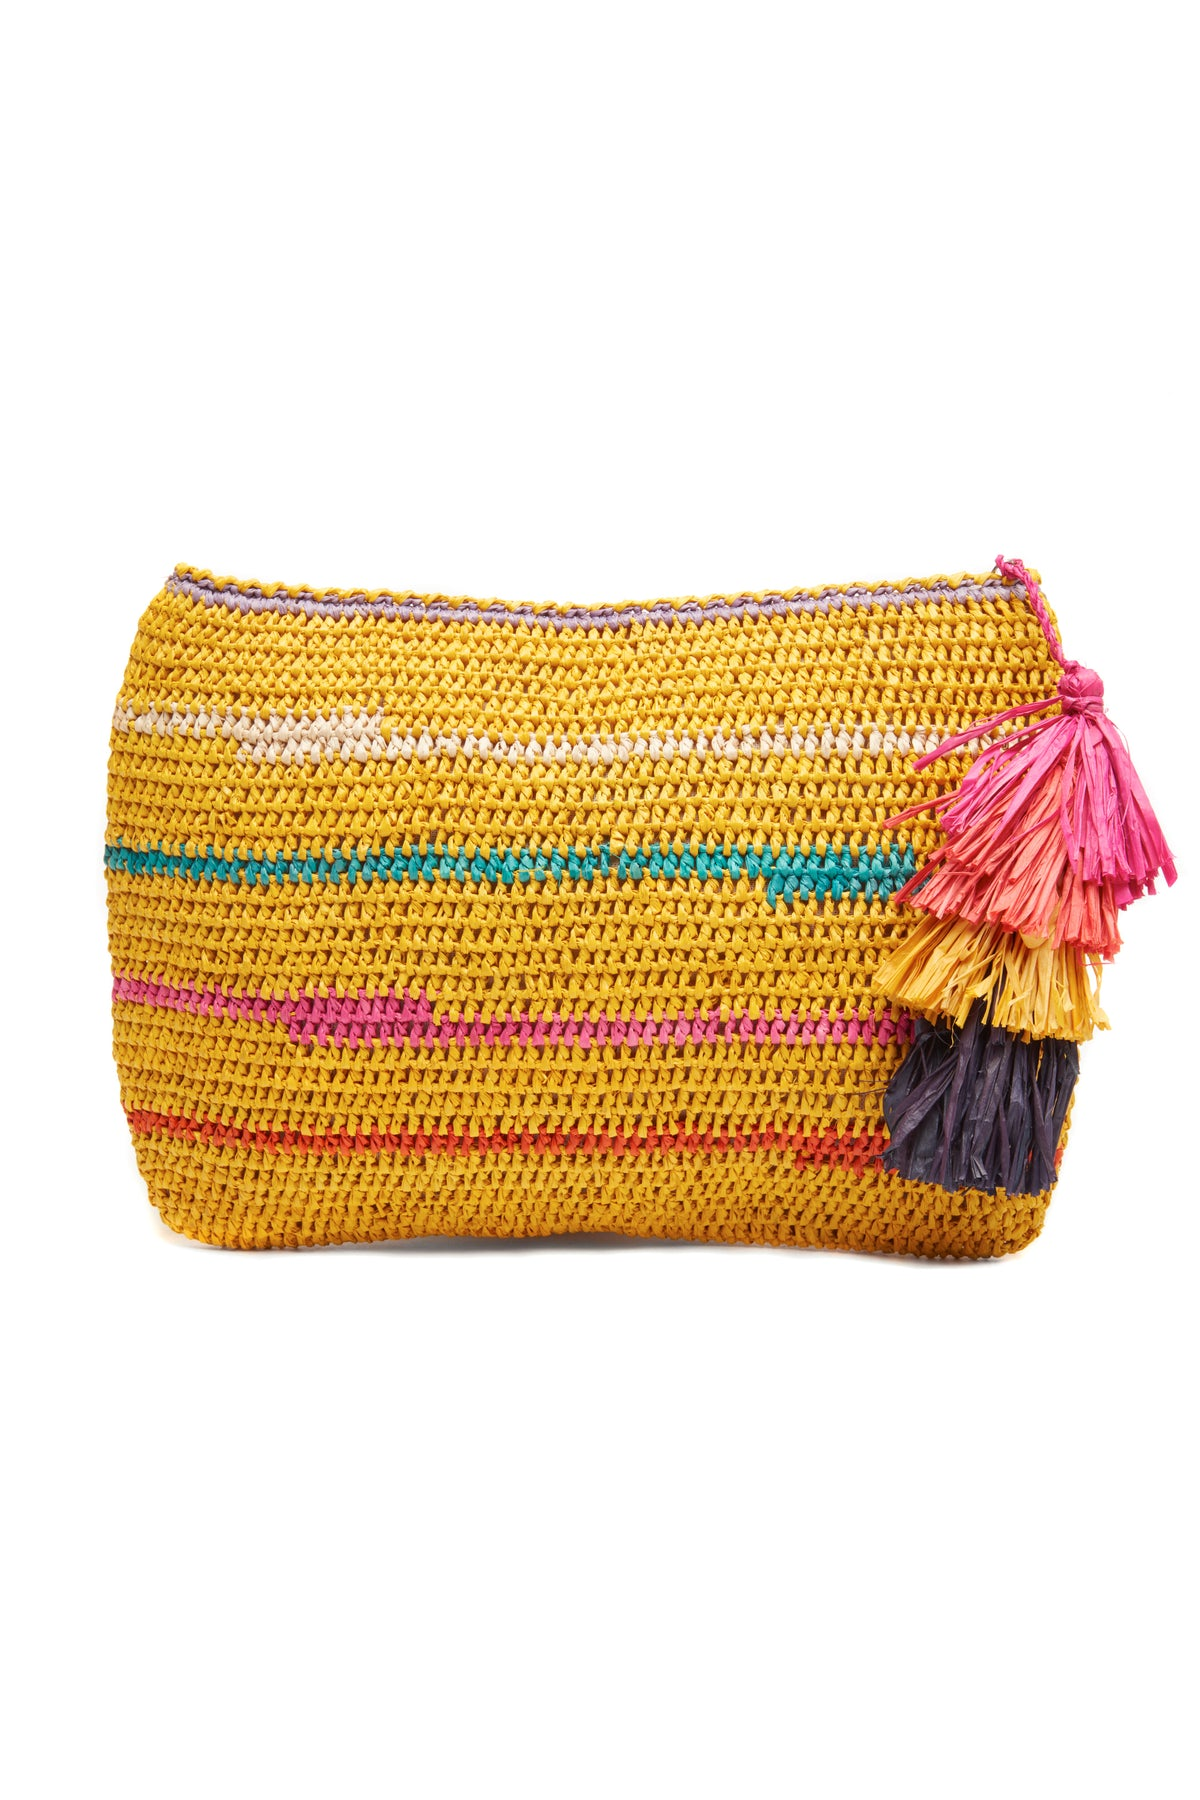 Evia Sunflower Crocheted Raffia Clutch